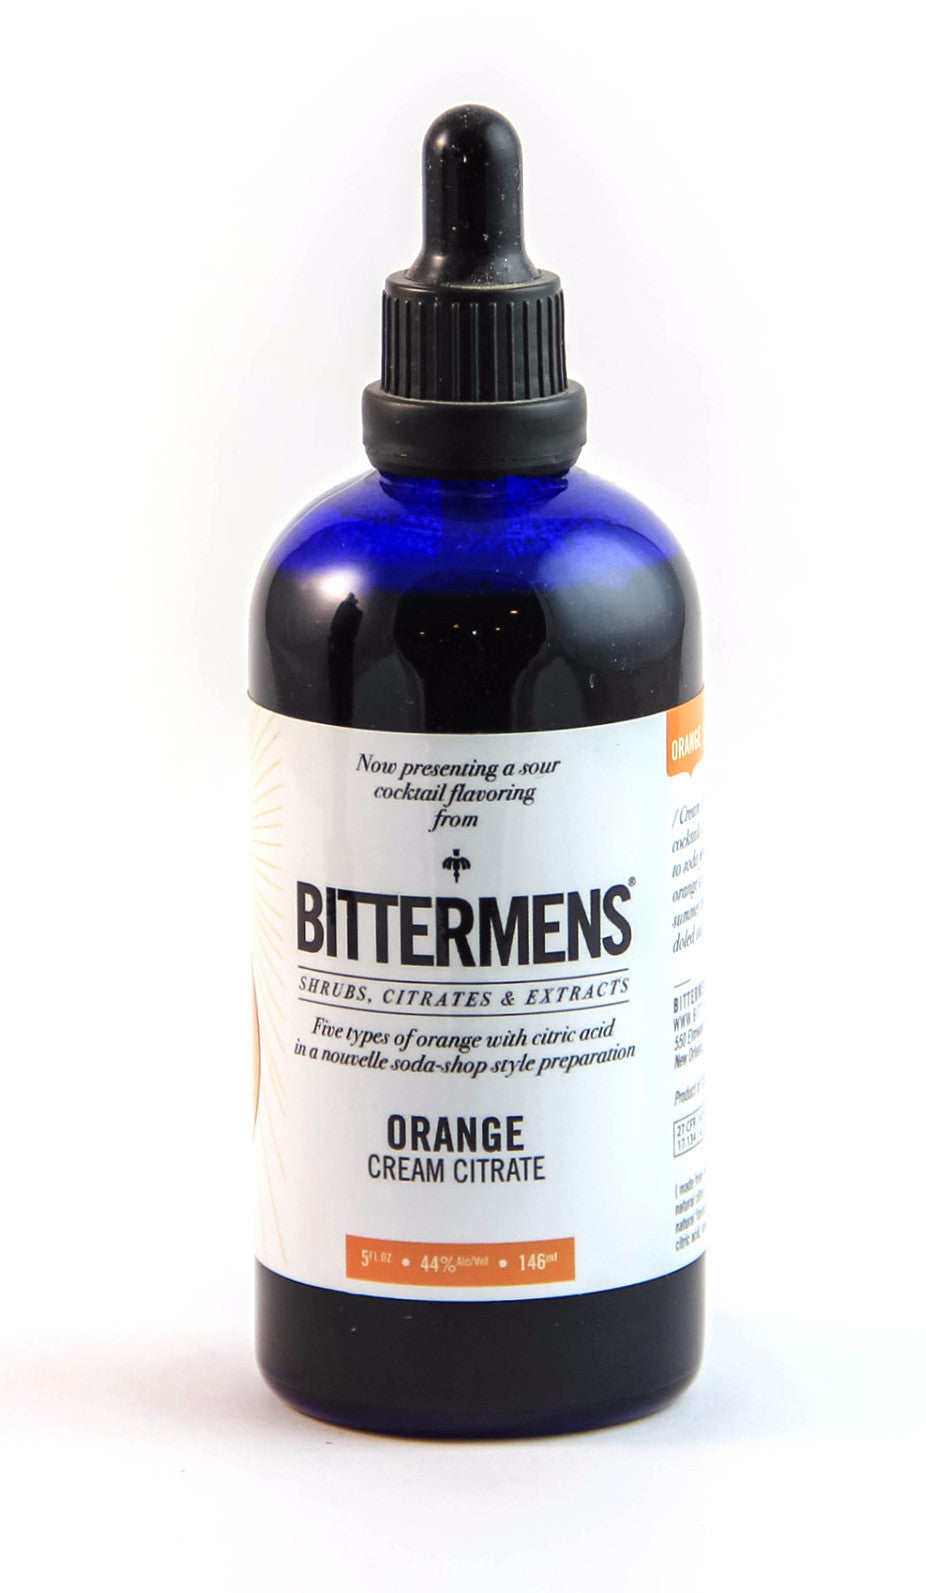 Bittermens Orange Cream Citrate-Bitters, Syrups and Shrubs-The Meadow